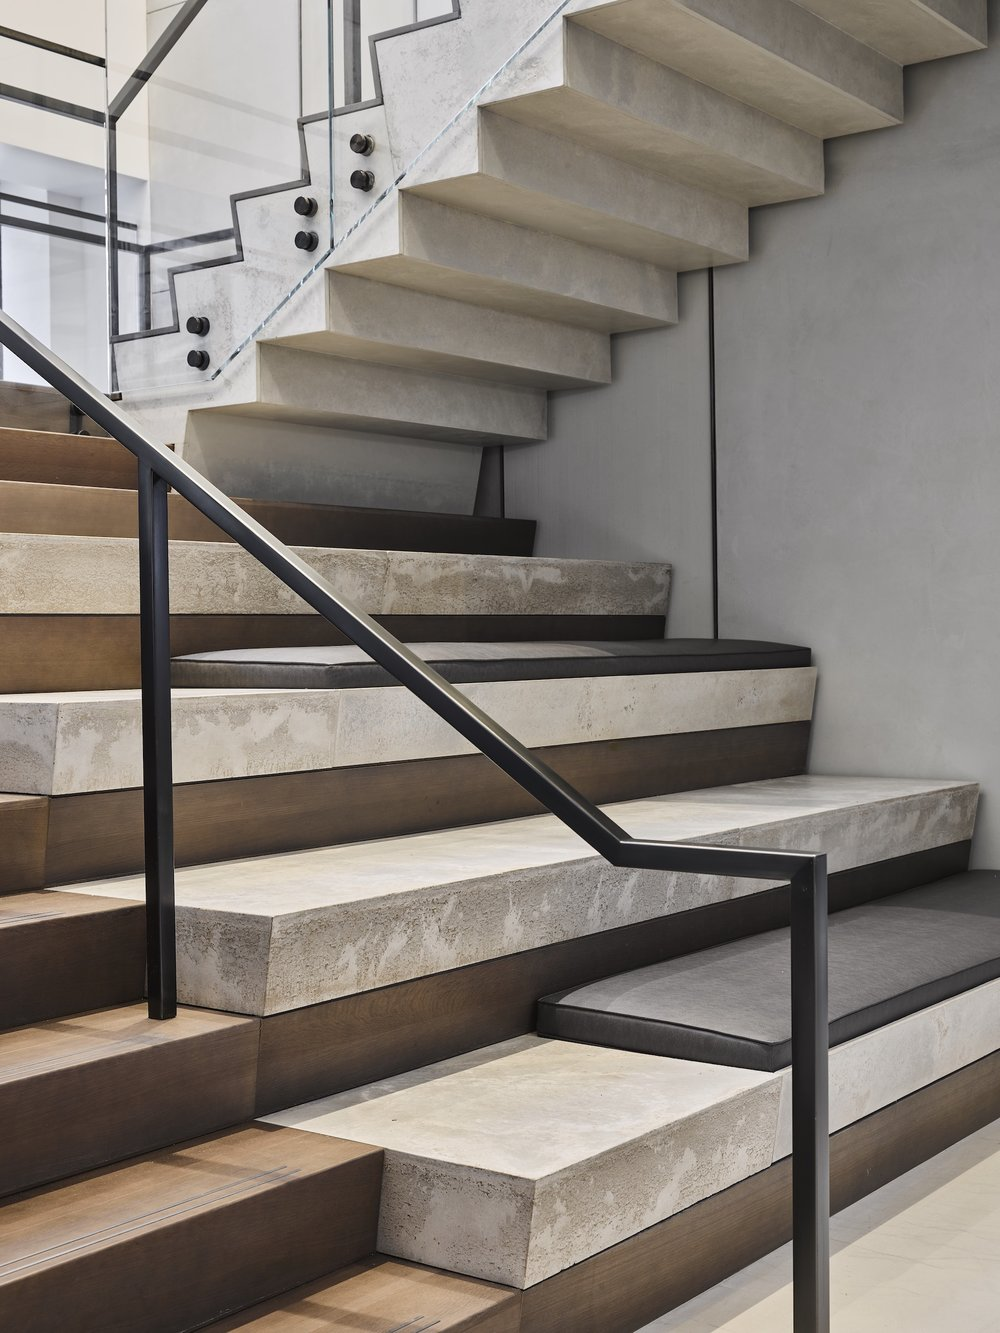 Get Real Surfaces concrete wall panels, concrete stairs, trowel-applied concrete wall finish